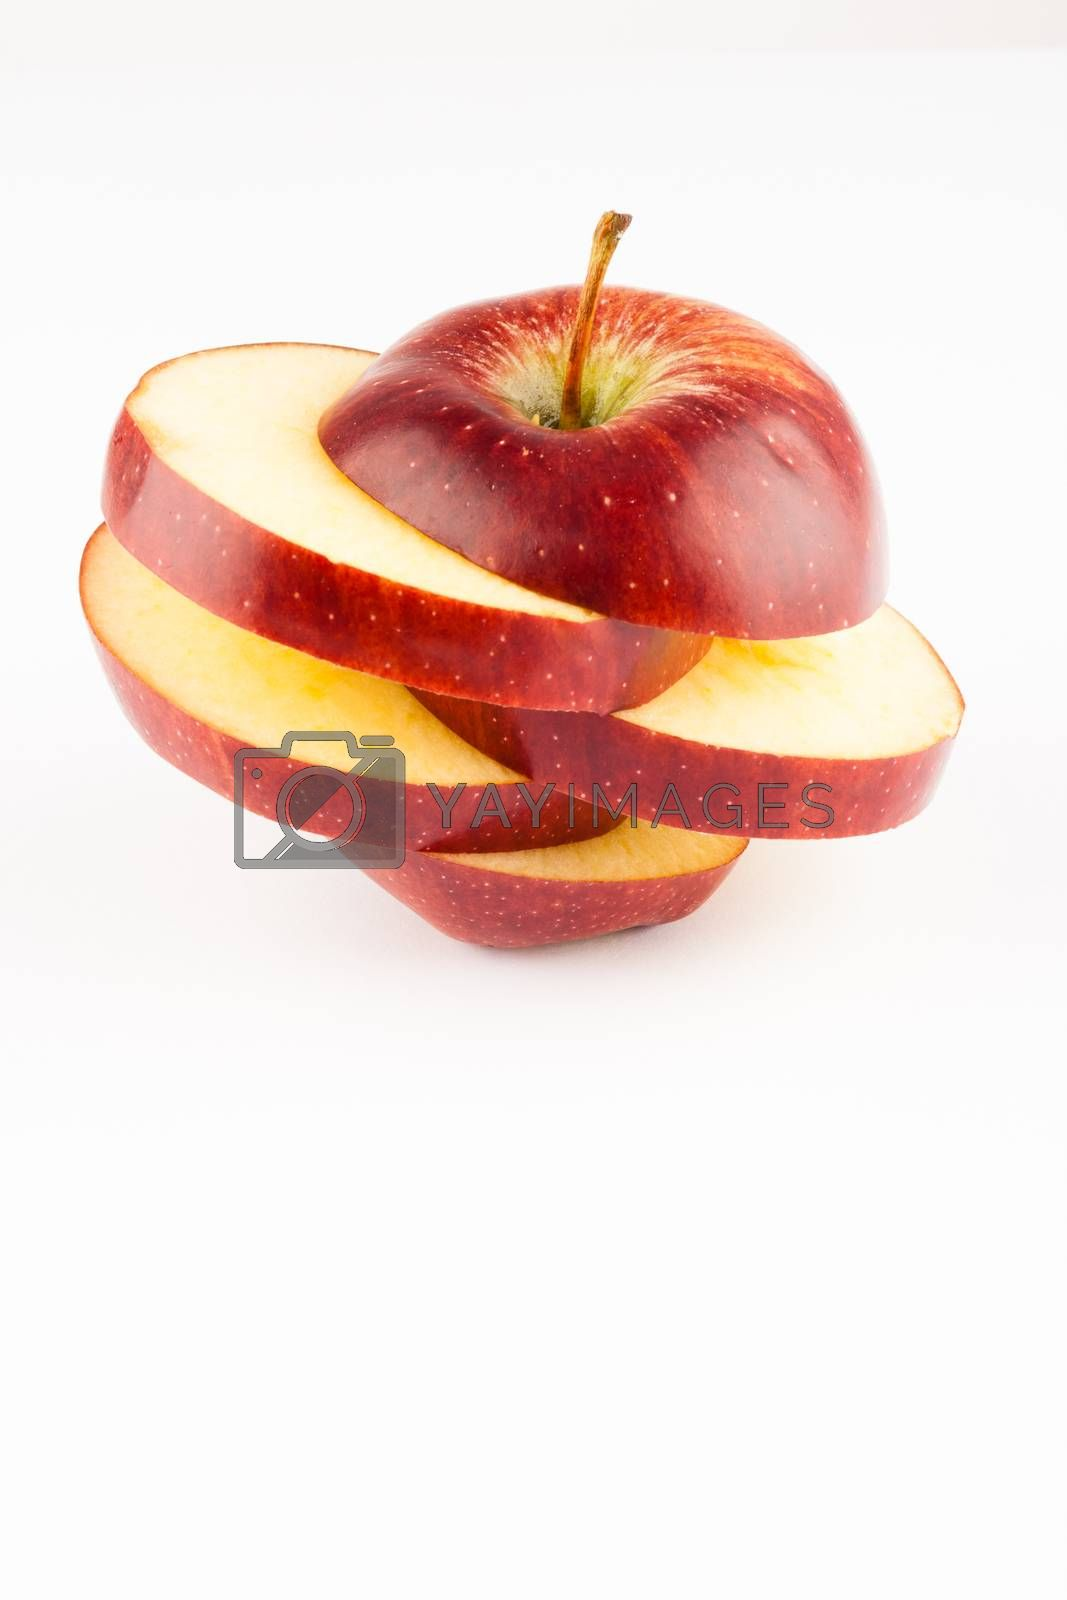 Royalty free image of sliced apple by furo_felix